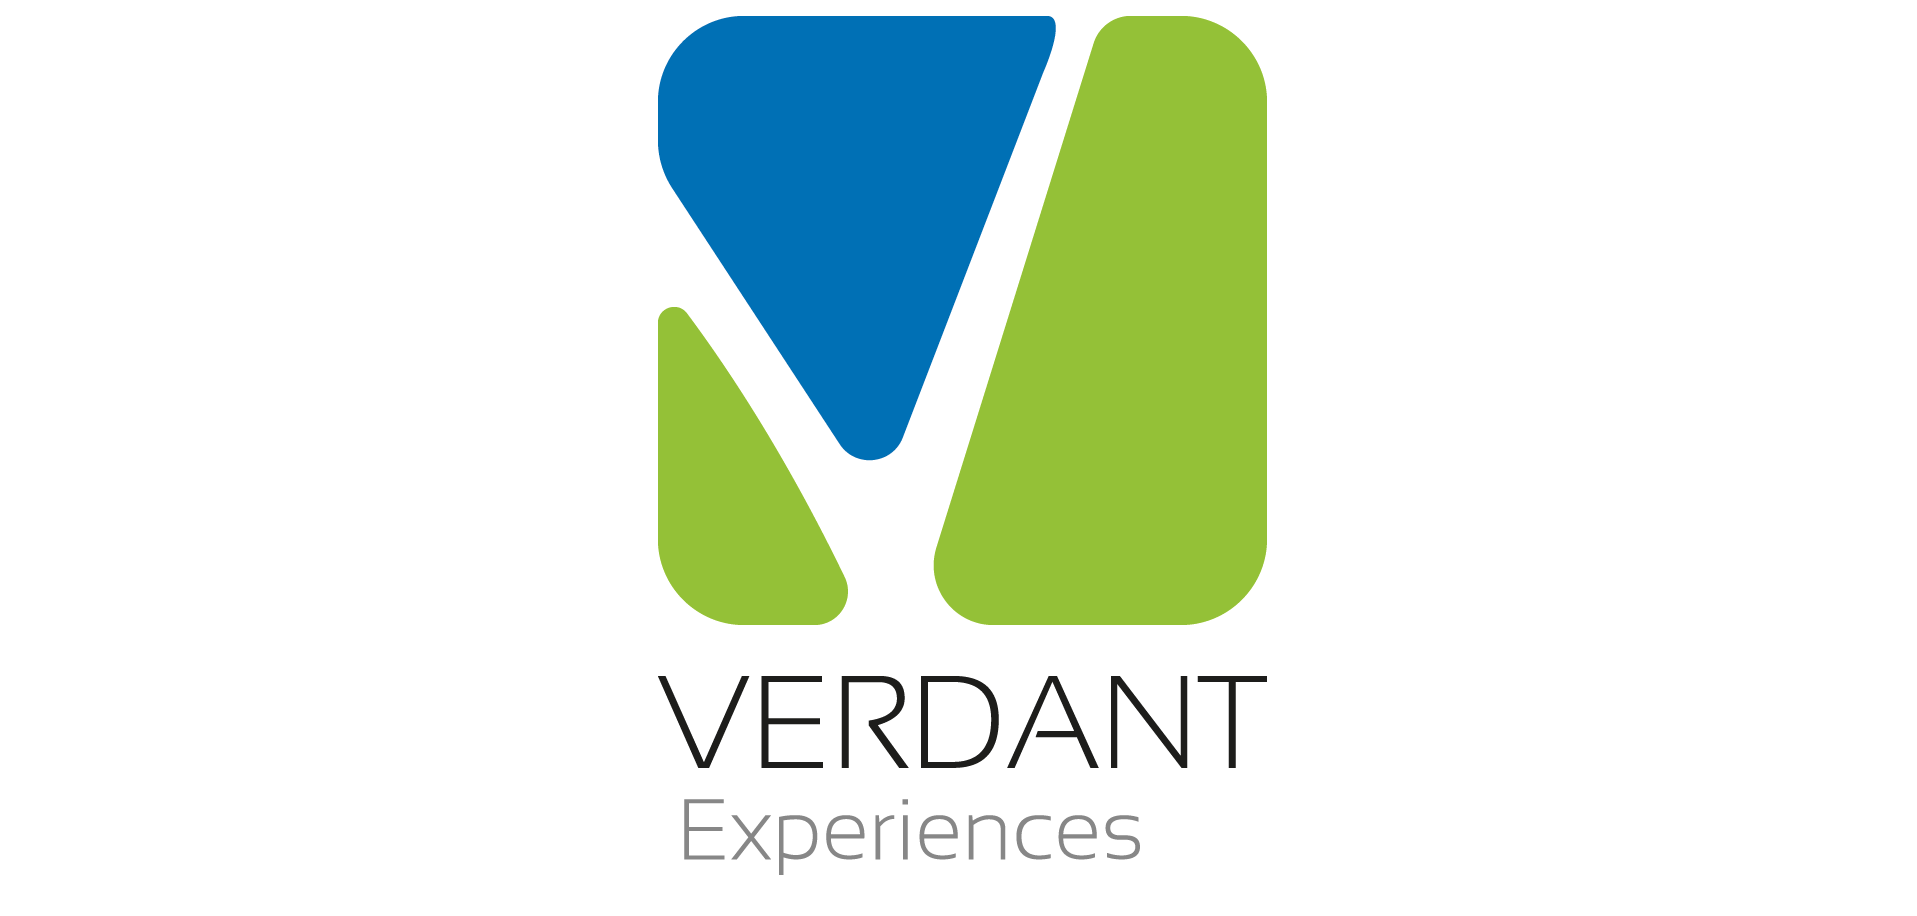 Welcome to Verdant Experiences!